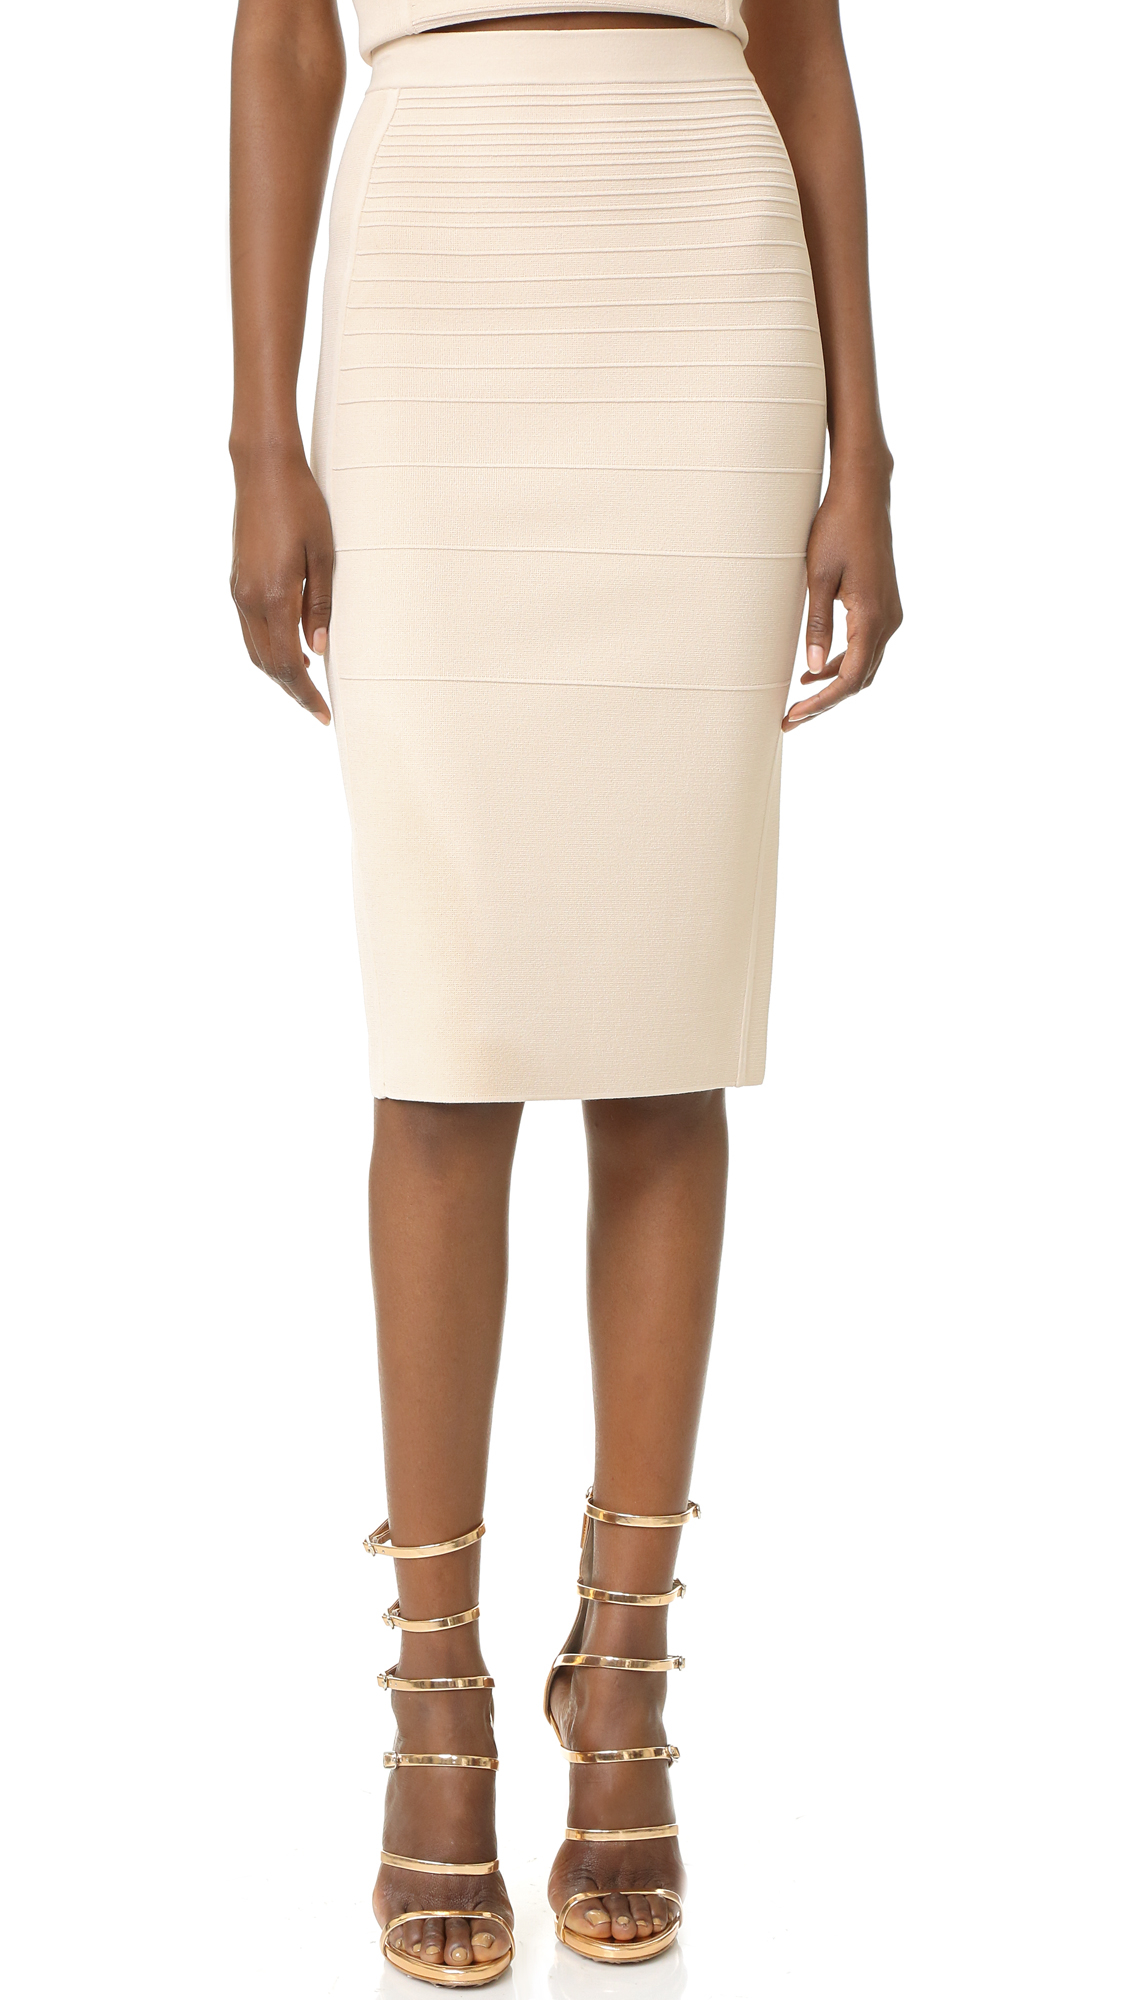 Narciso rodriguez Knit Pencil Skirt in White | Lyst